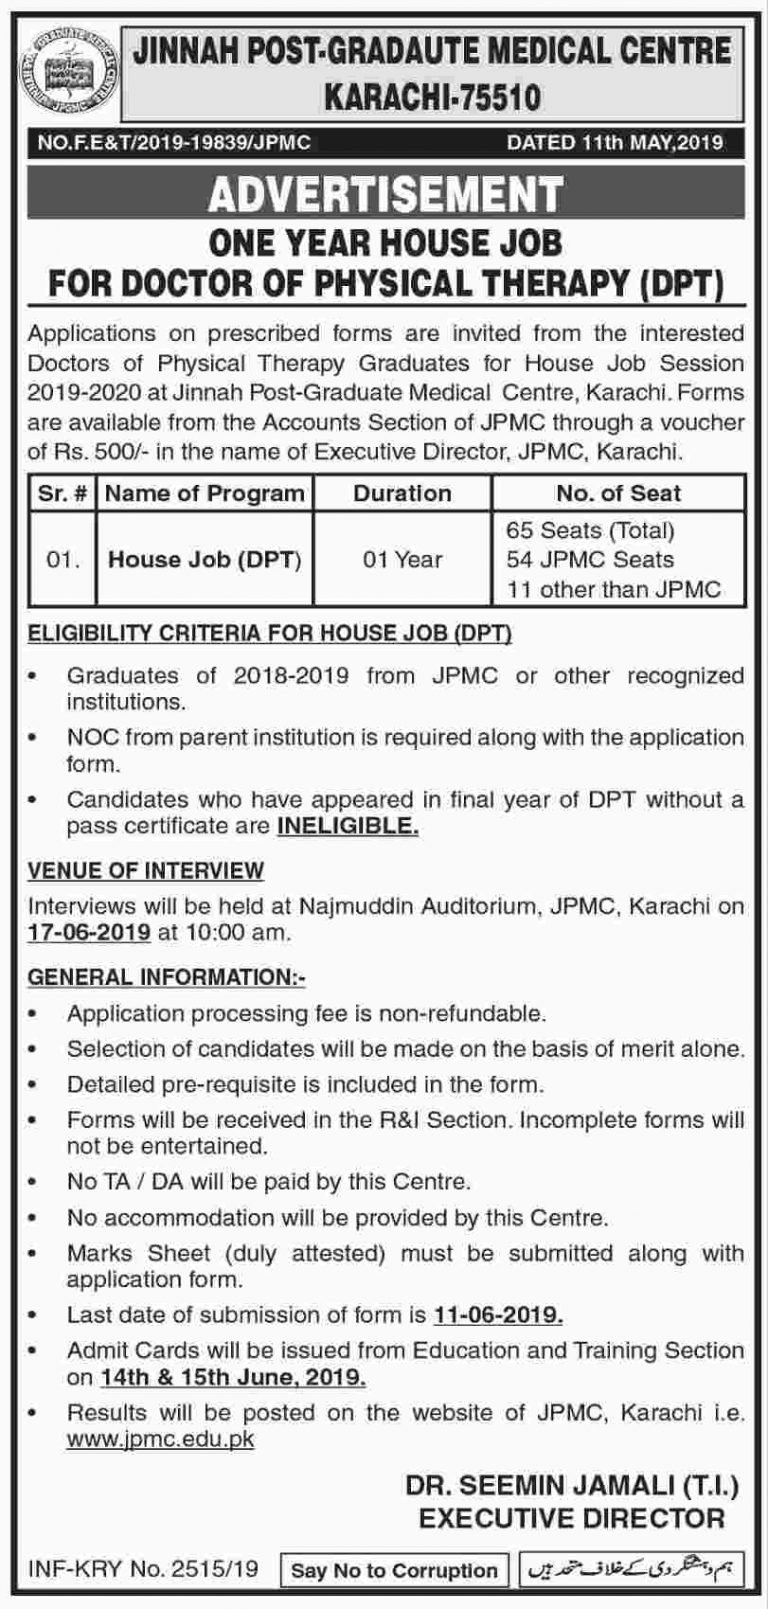 Jinnah Post-Graduate Medical Centre House Job Training Program 2019